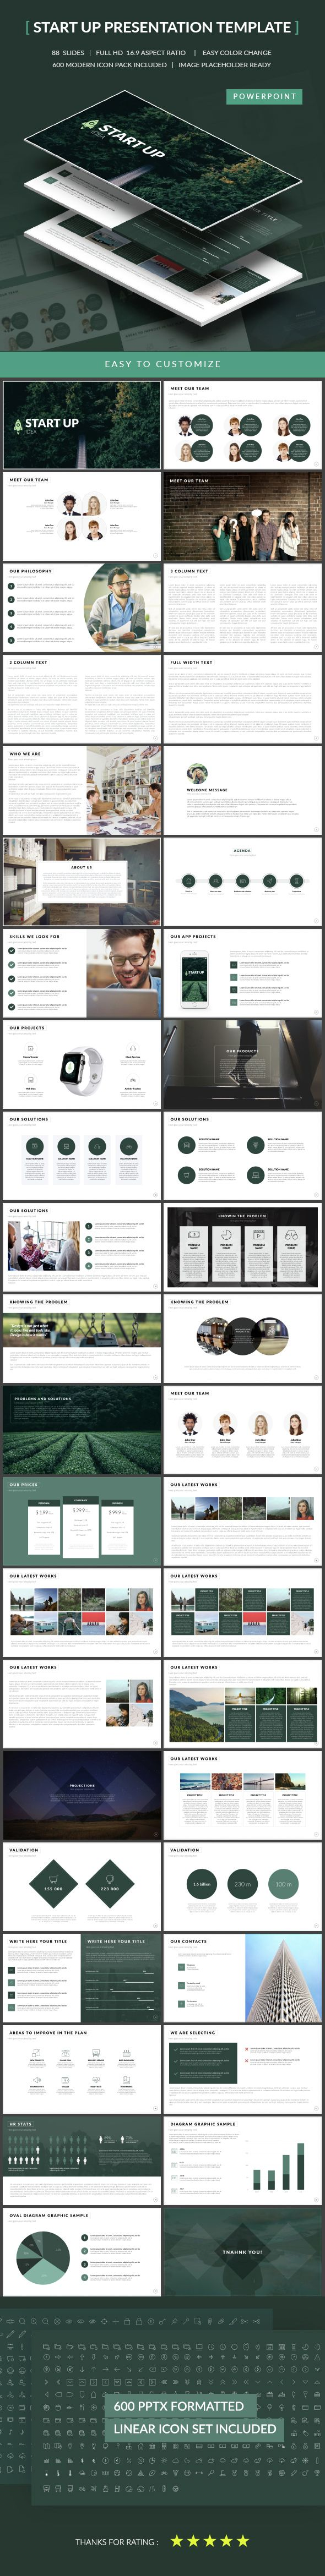 Start Up Powerpoint Presentation Template. Download here: http://graphicriver.net/item/start-up-powerpoint-presentation-template/14835361?ref=ksioks